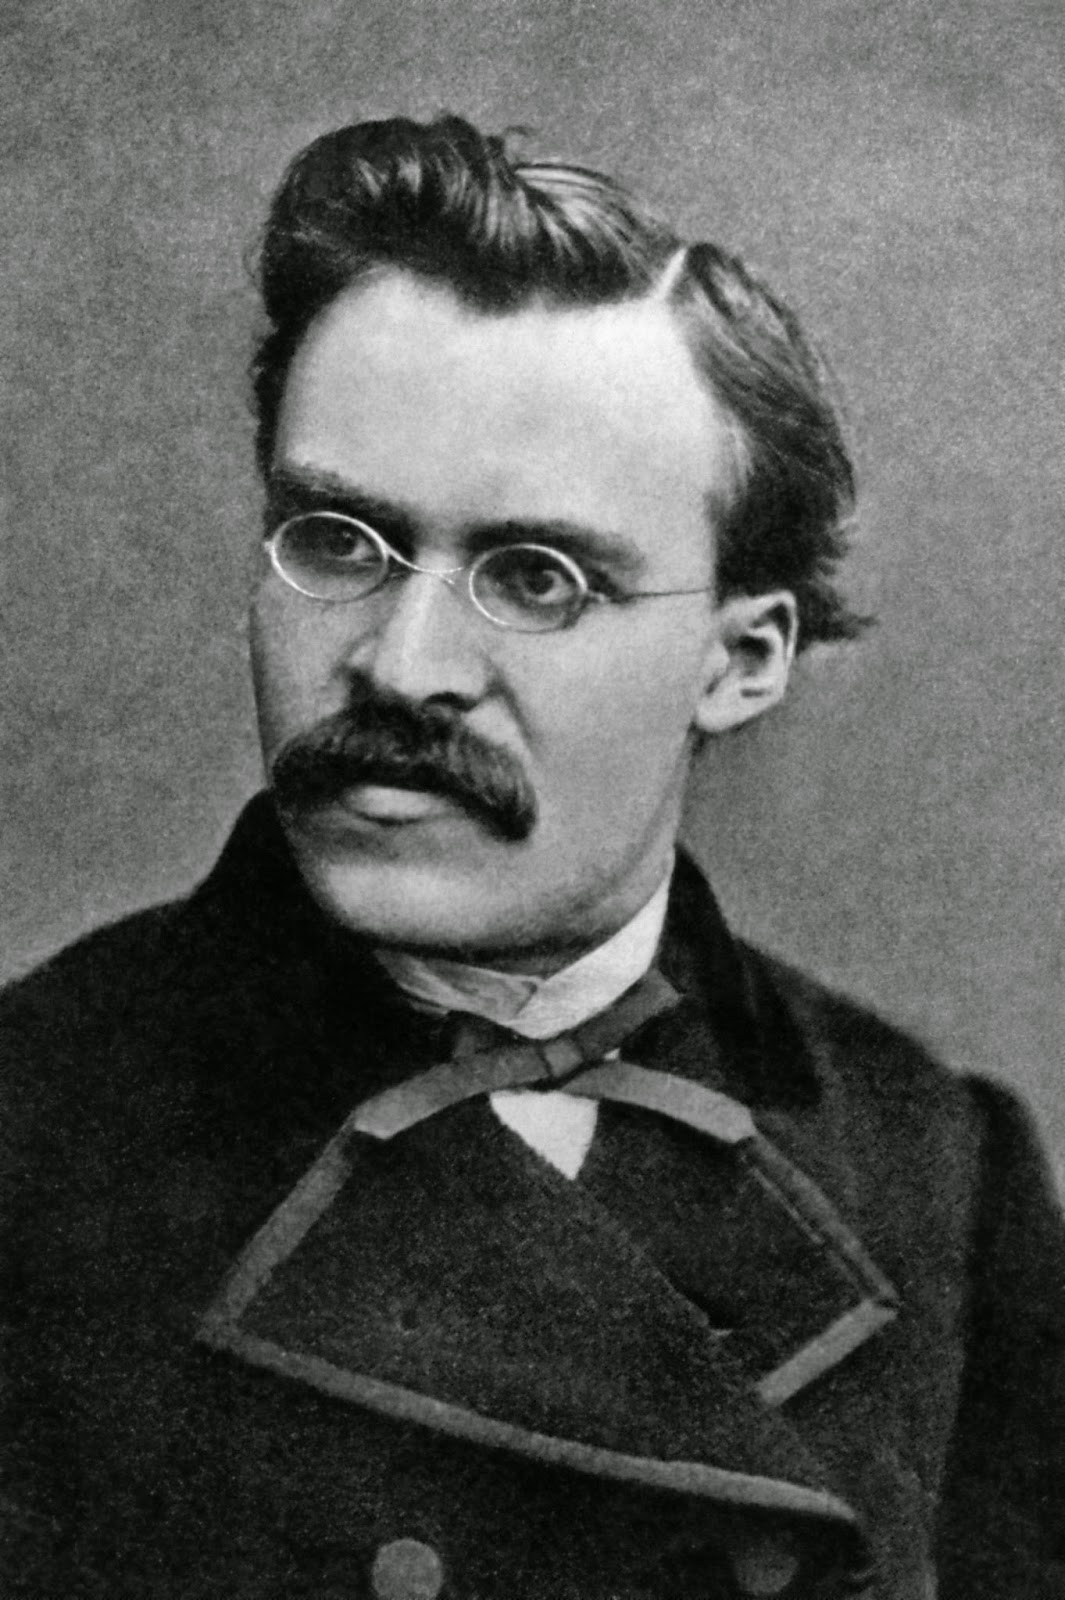 Top 14 Greatest Philosophers And Their Books - Nietzsche - Beyond Good and Evil